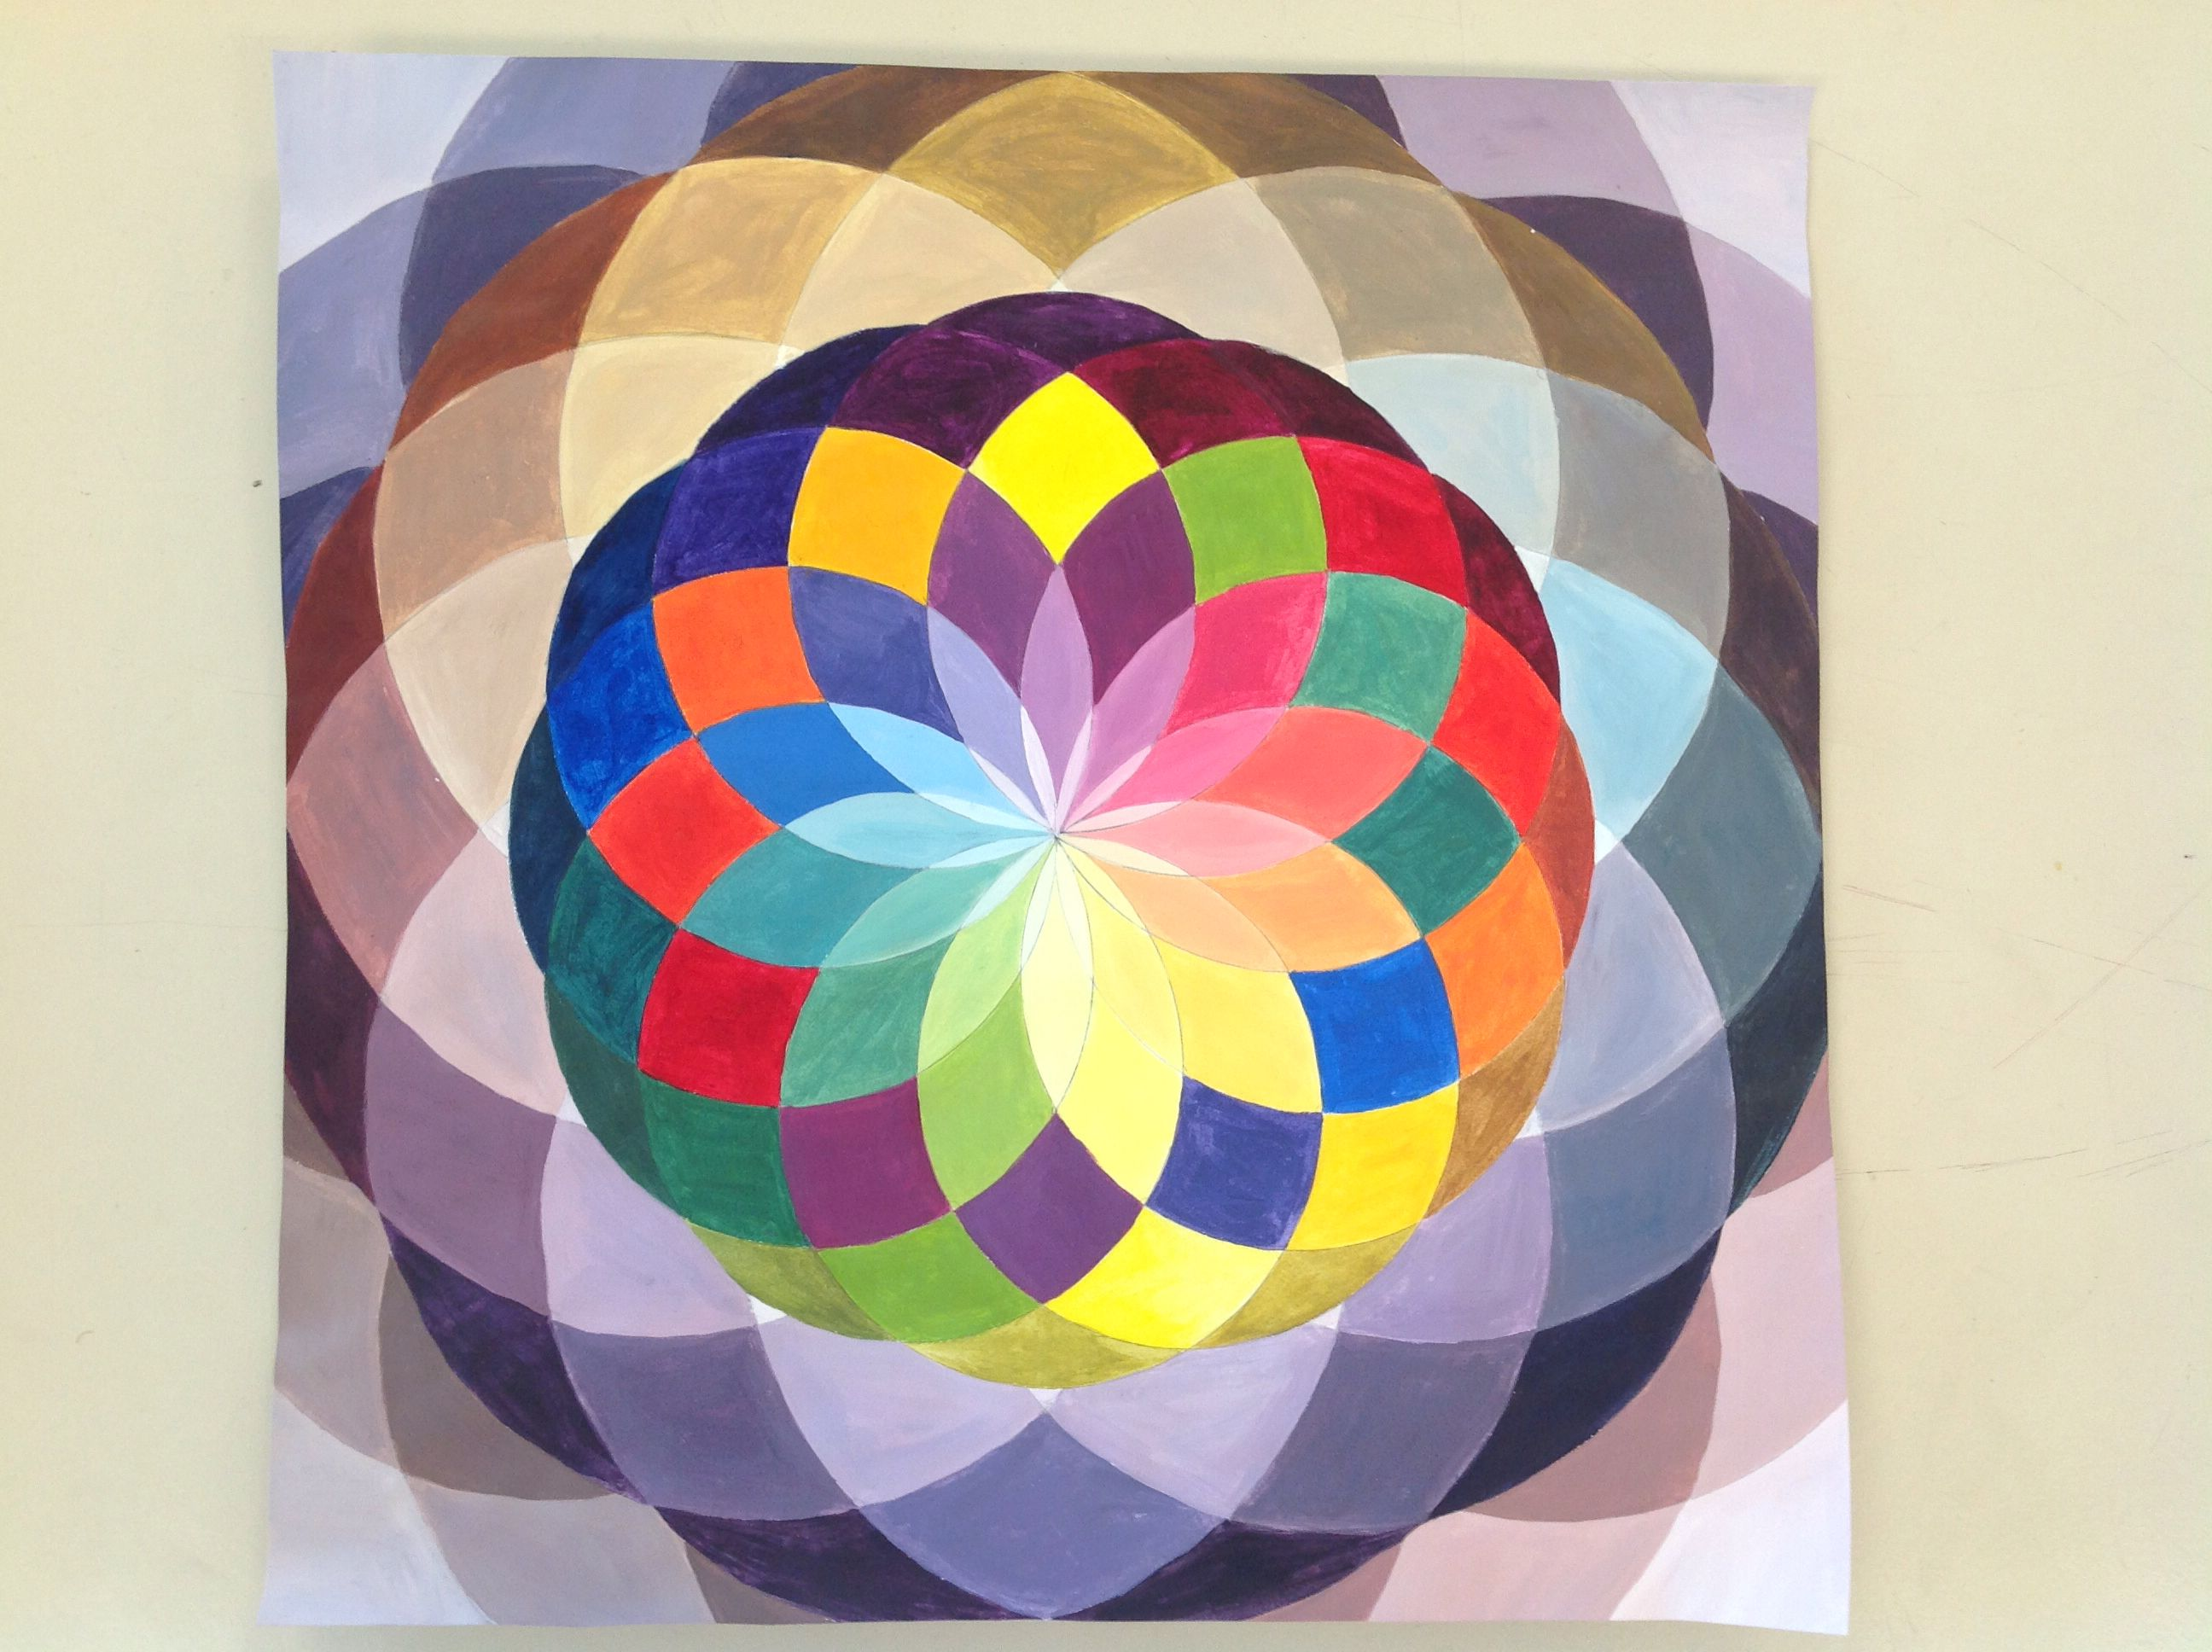 Color Wheel Tints Hues Shades And Tones With